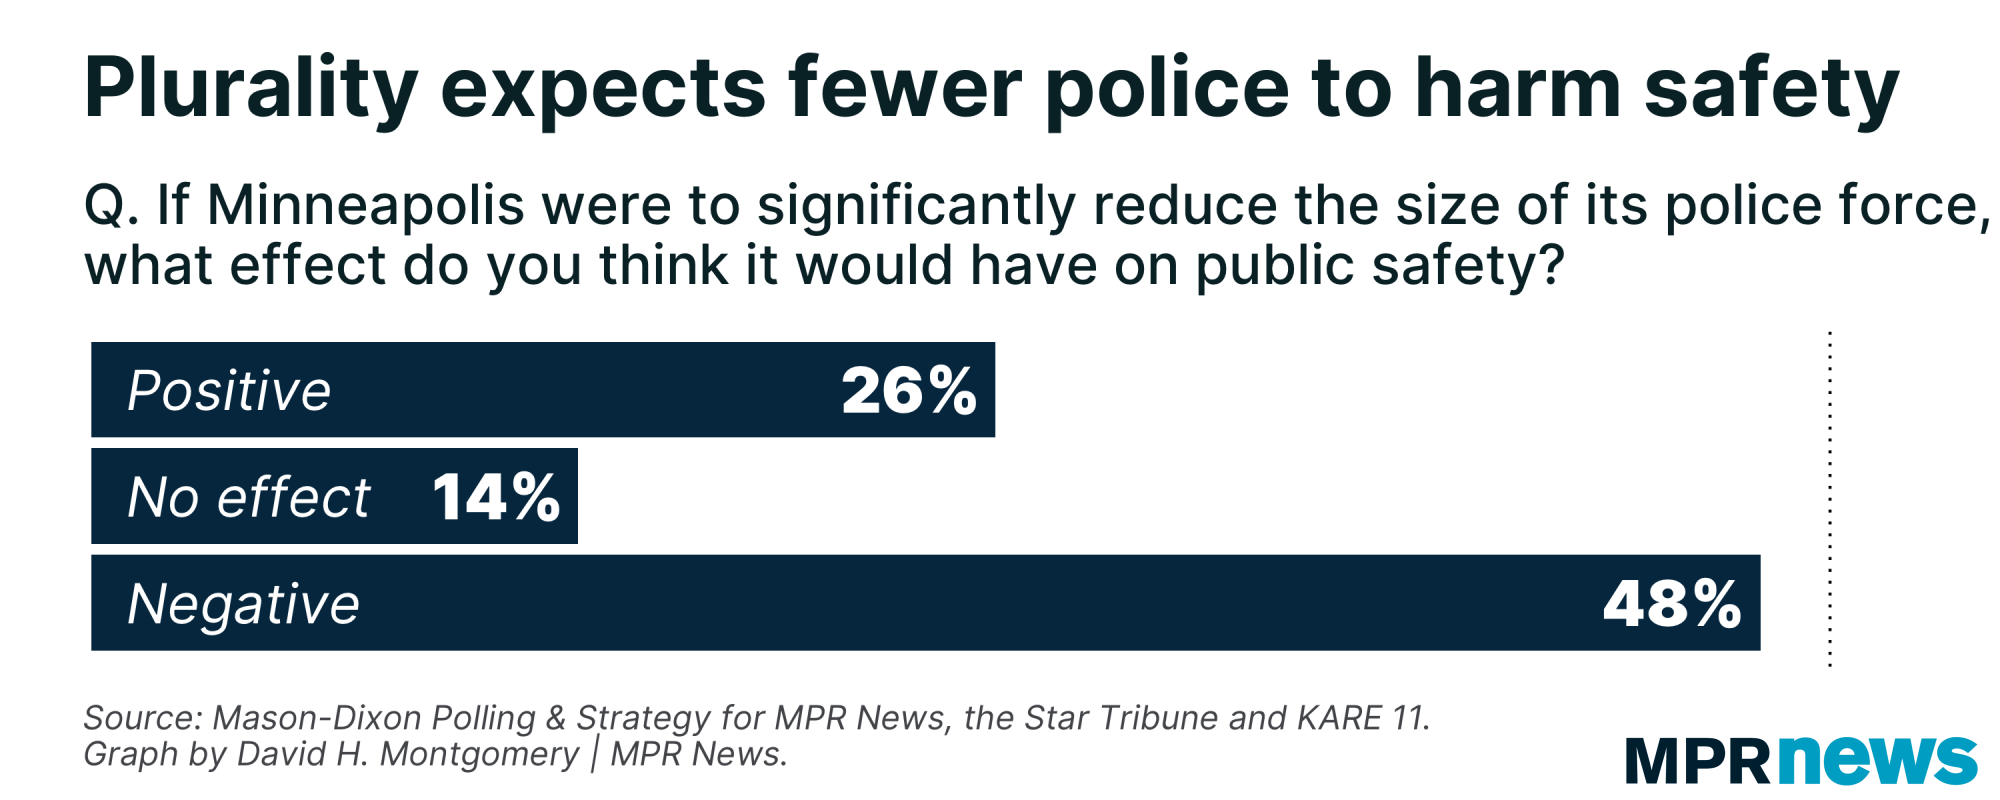 Many Minneapolis voters think cutting police will harm public safety